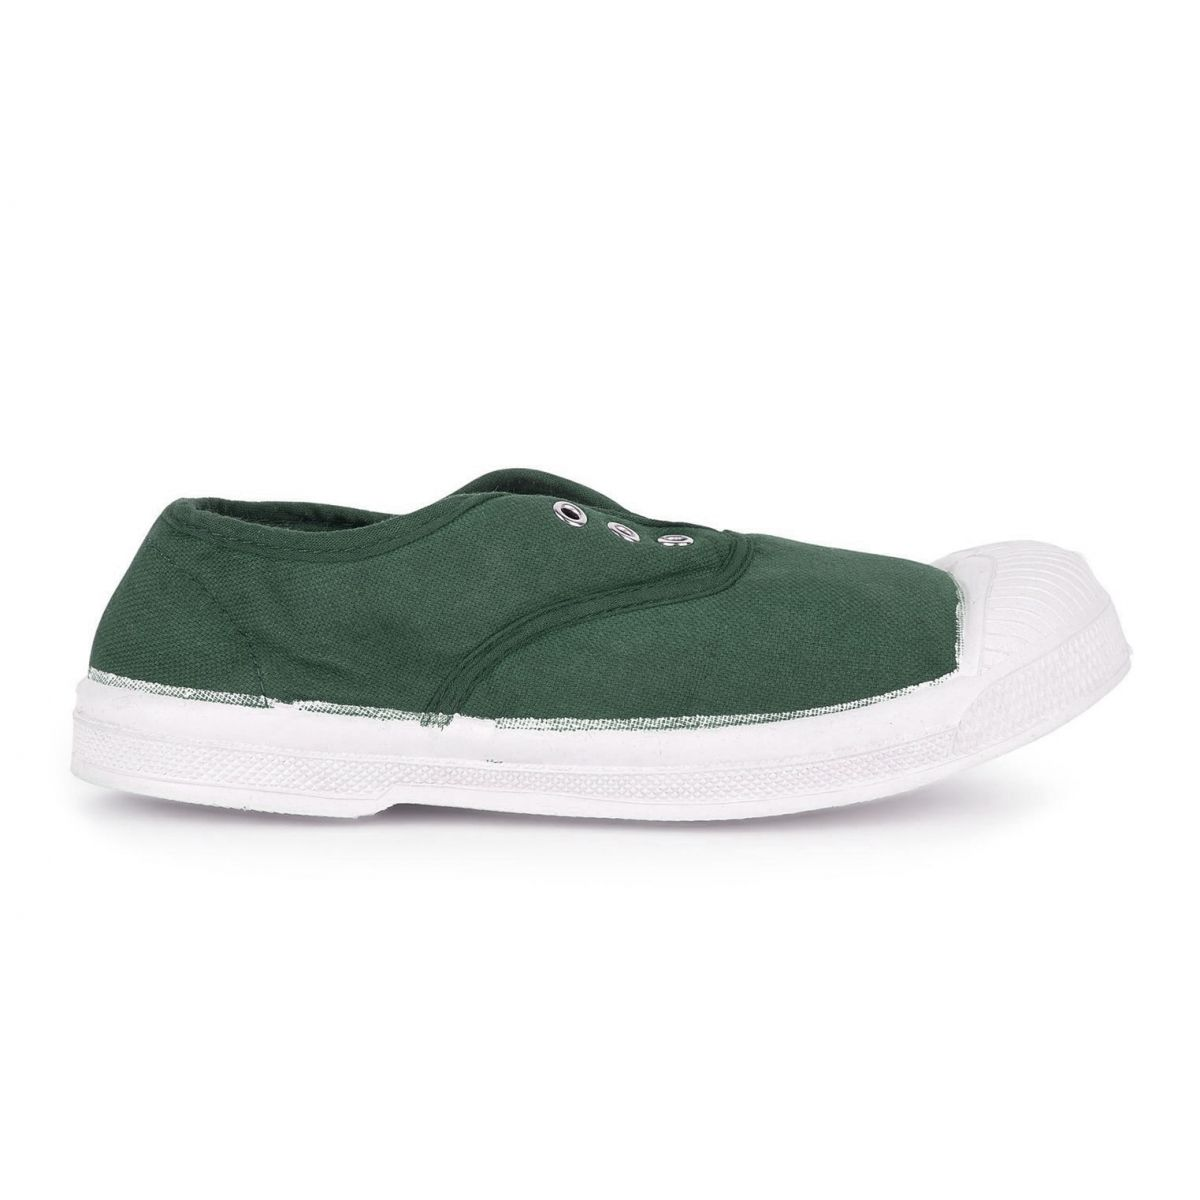 Bensimon Elly sneakers ADULT bottle